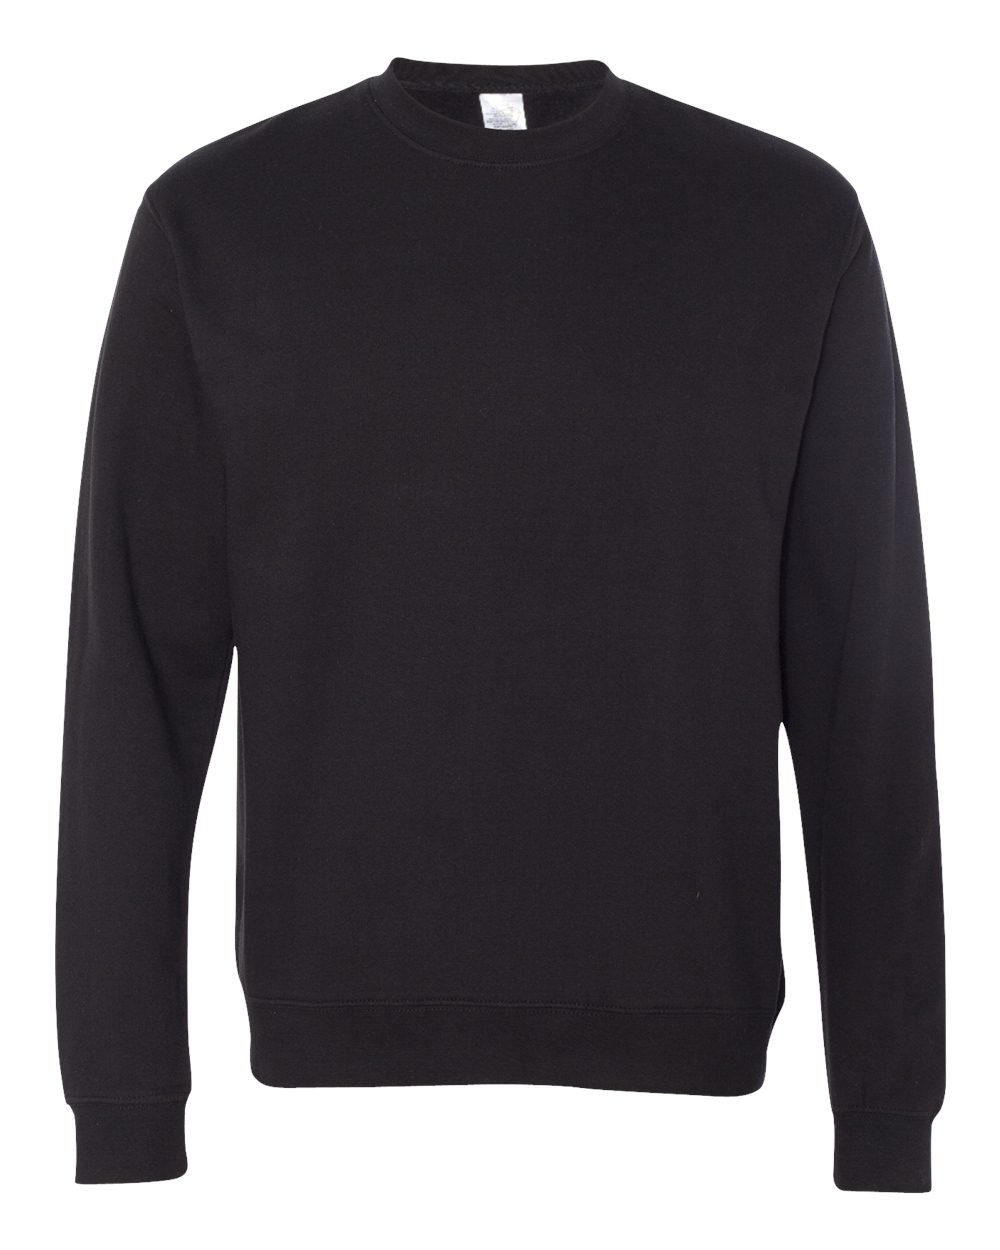 Independent-Trading-Co-Midweight-Crewneck-Sweatshirt-SS3000-up-to-3XL miniature 9